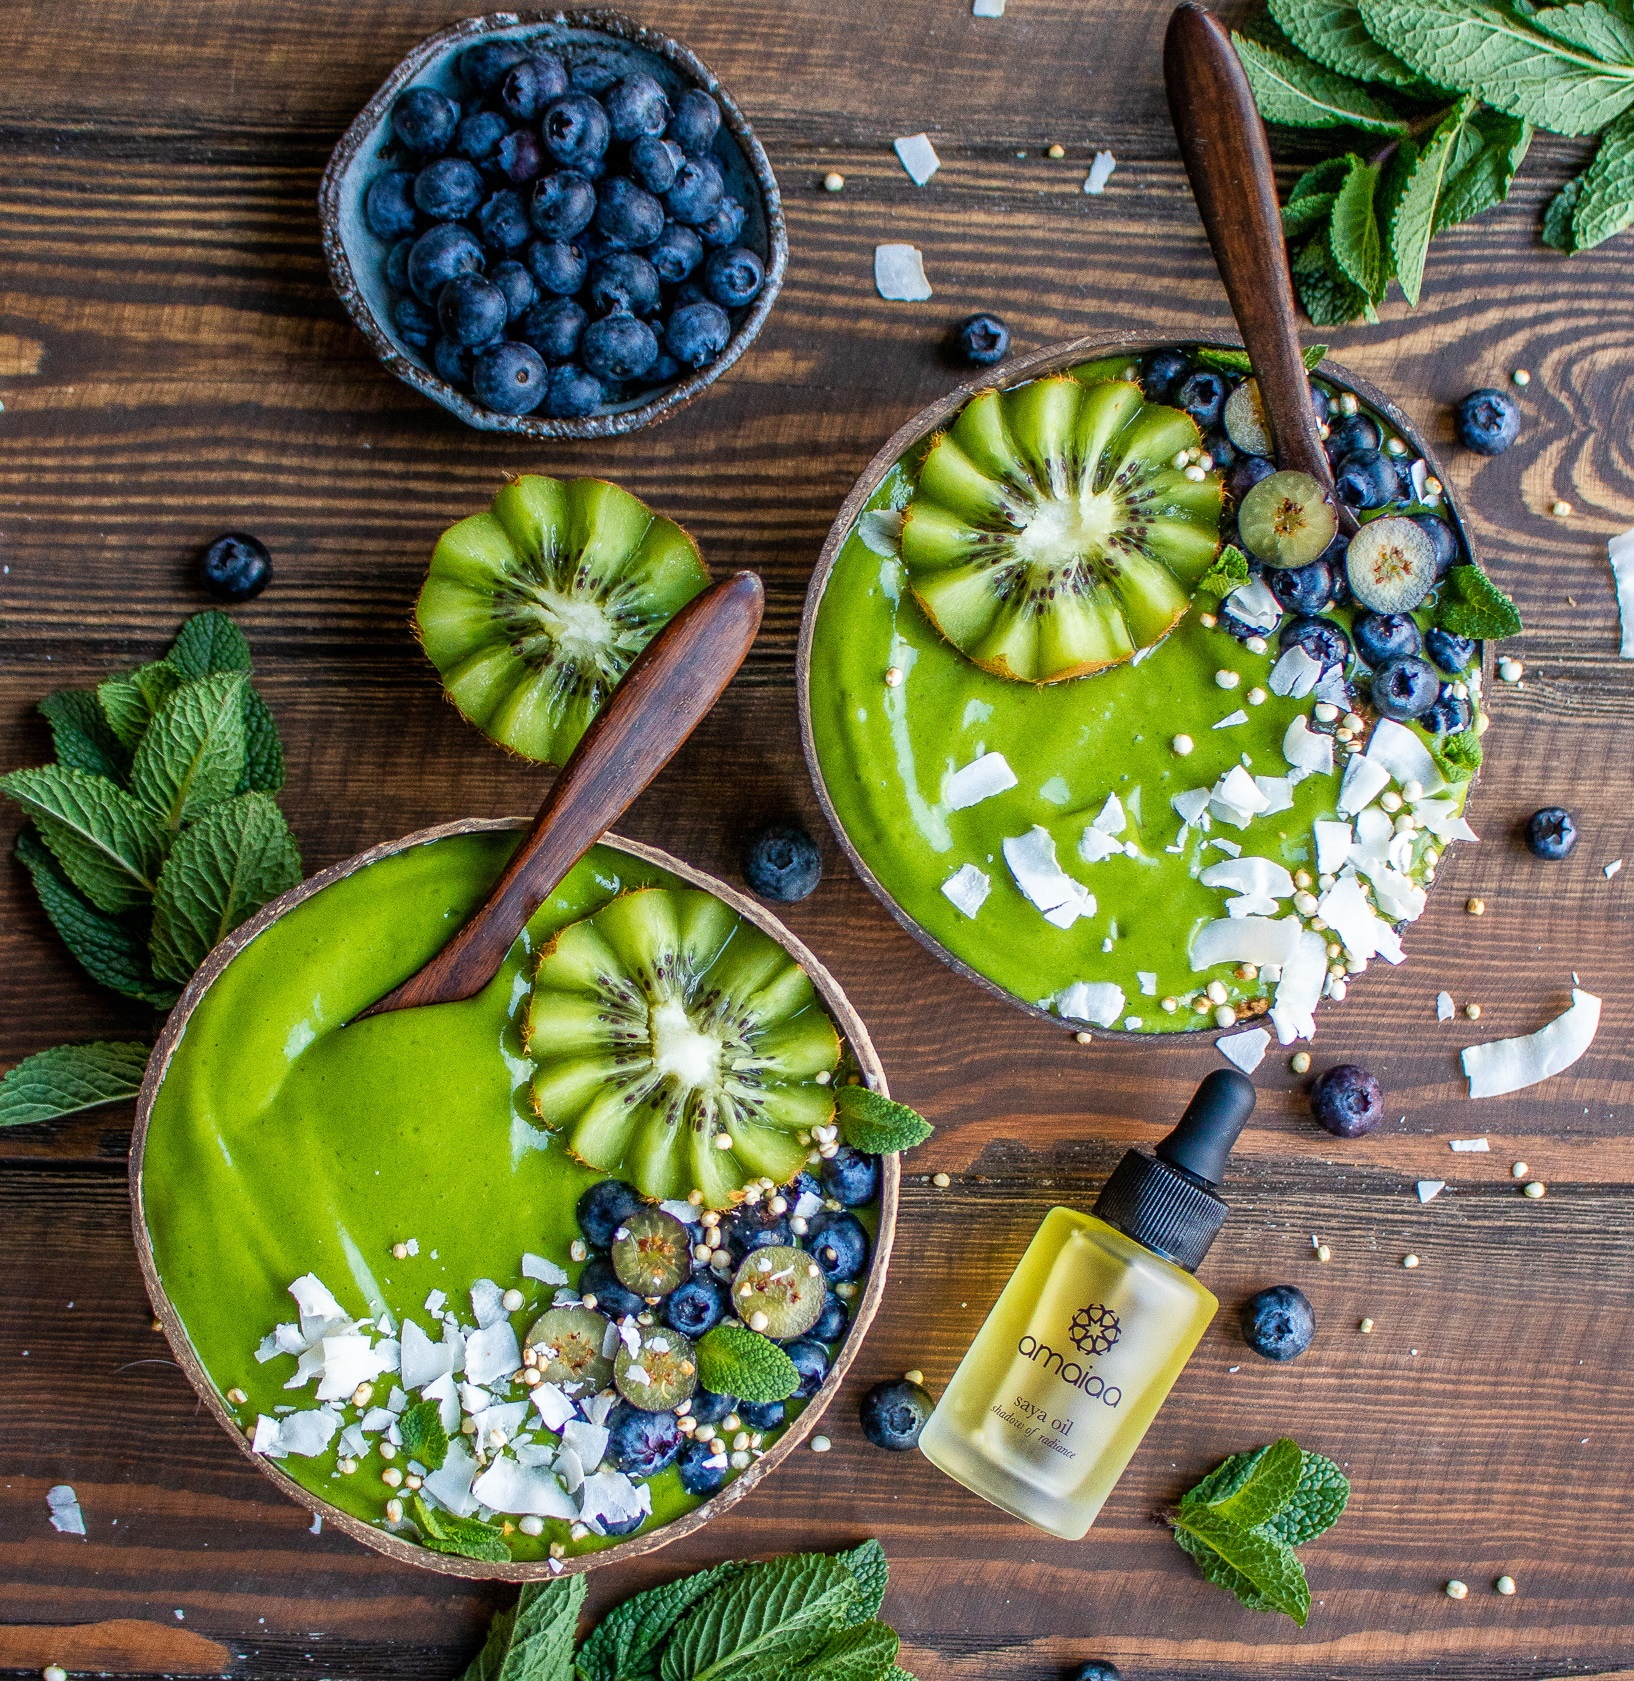 Green Beauty Recipe - Green Goddess by Happy Skin Kitchen